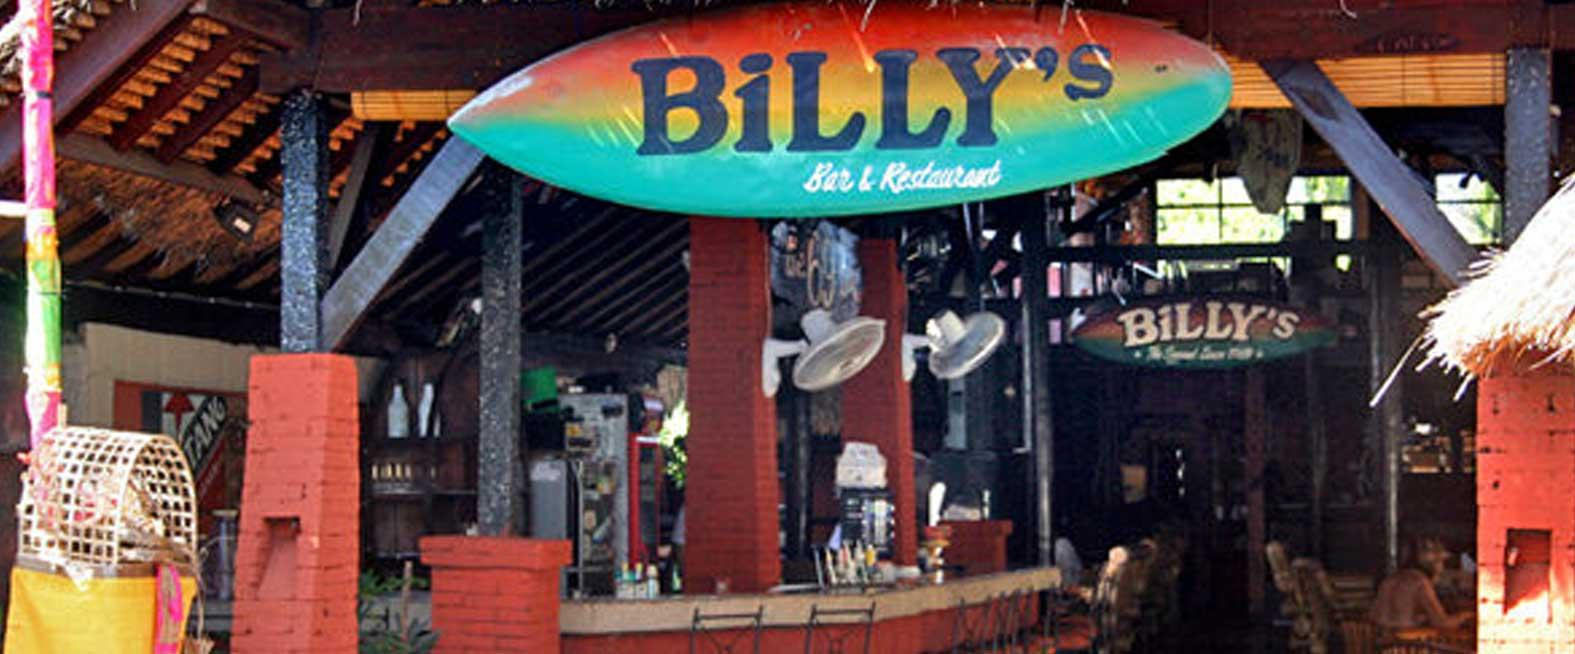 Billys Bar & Restaurant